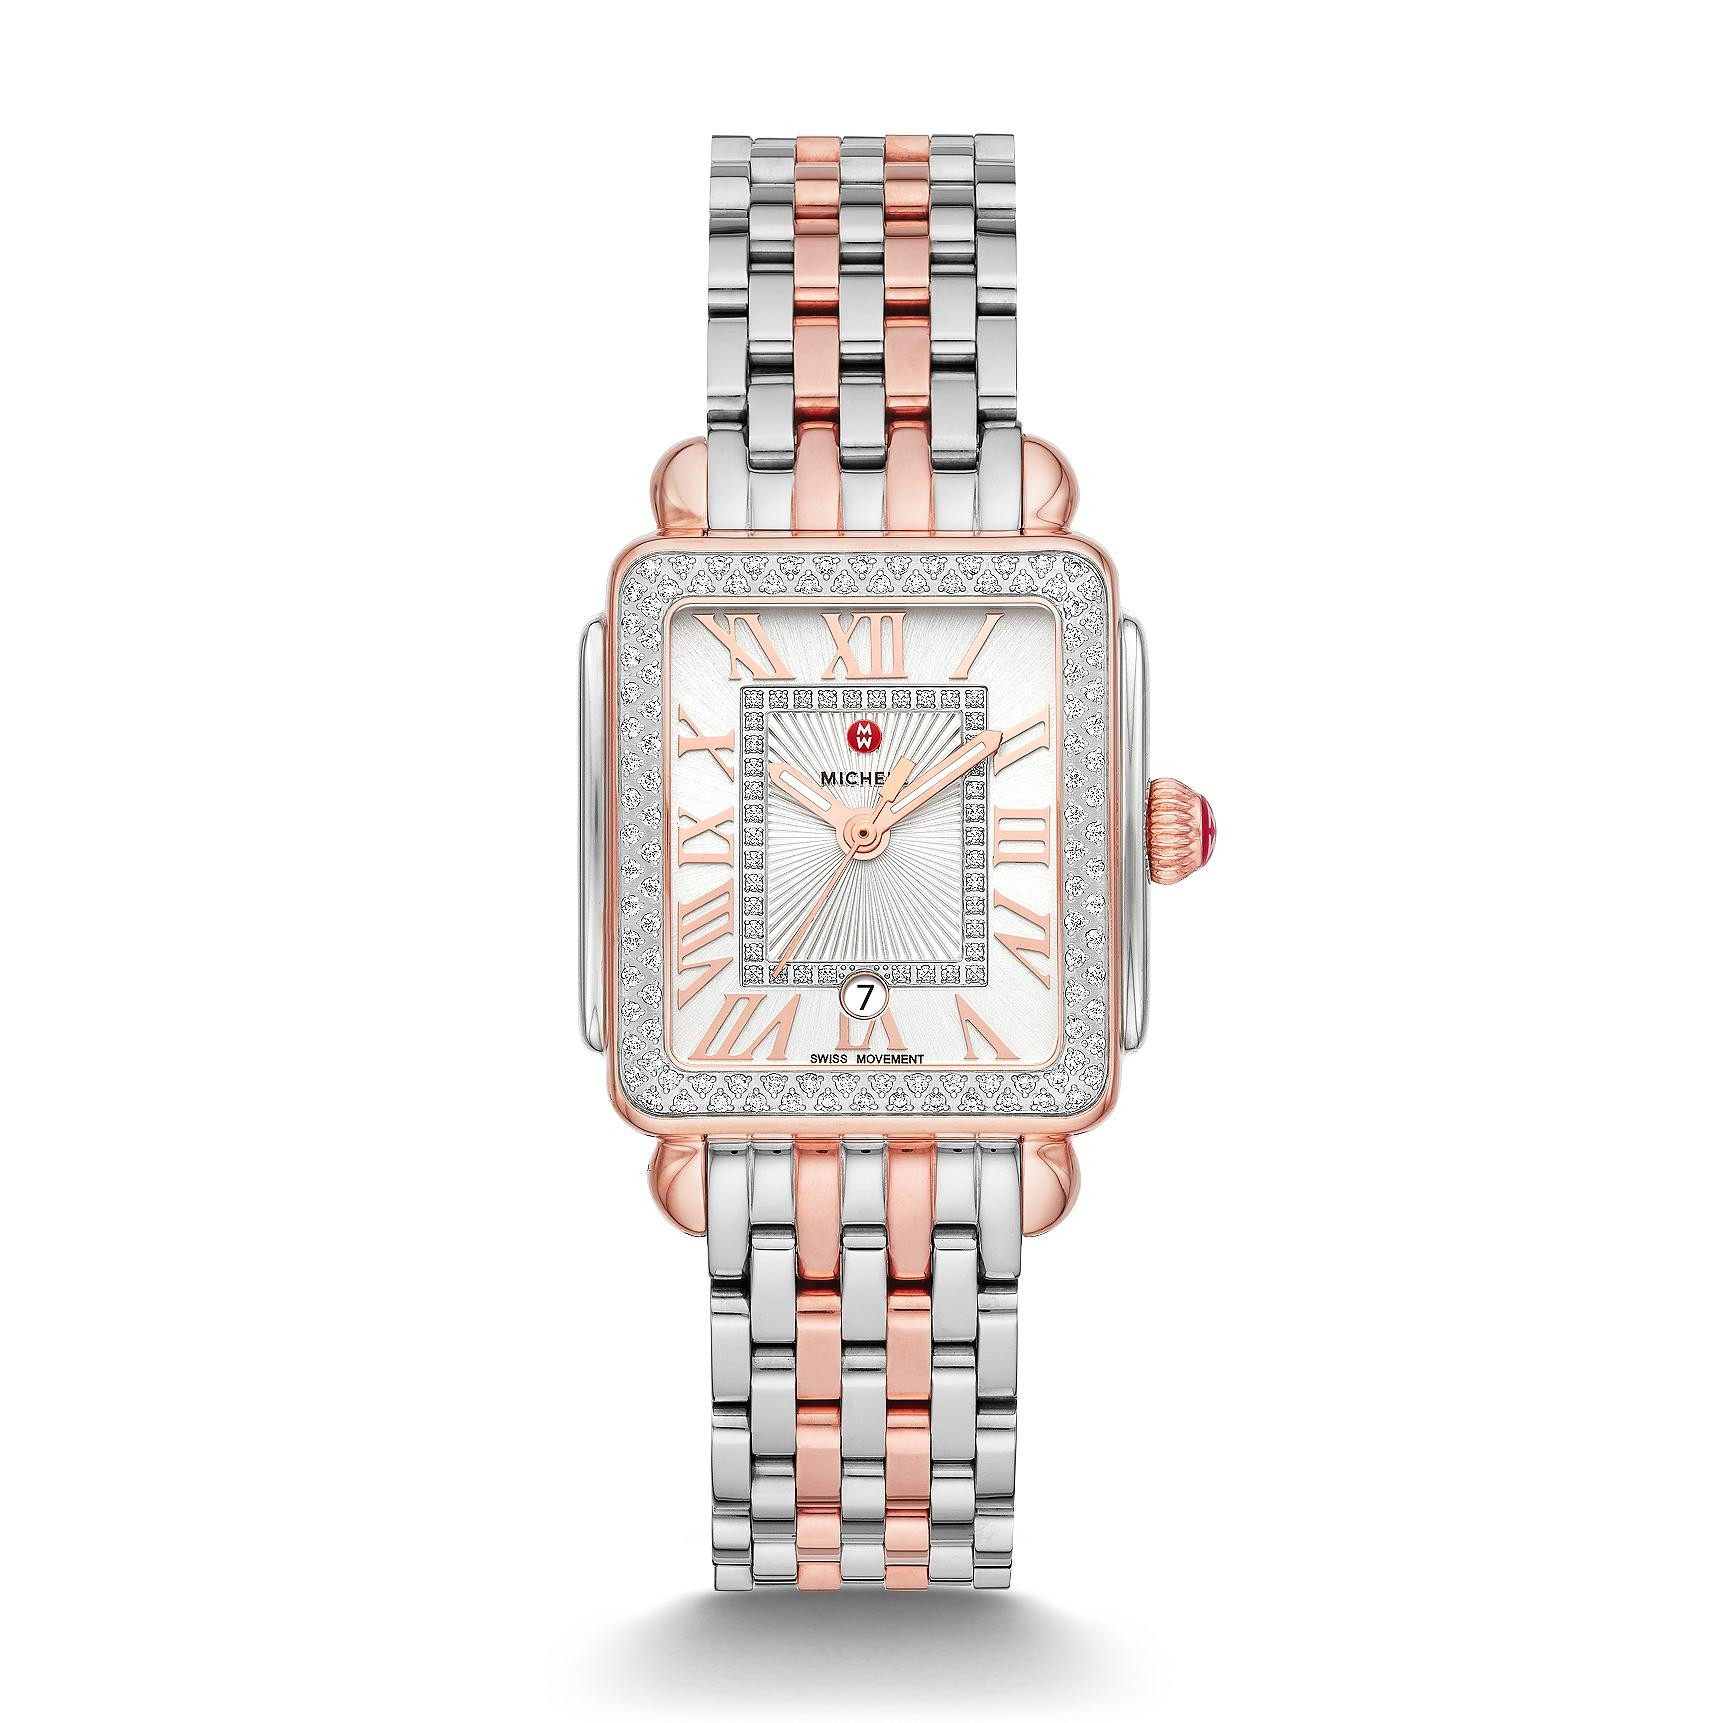 Michele Deco Madison Mid Diamond Dial Watch in Pink Gold and Steel full view